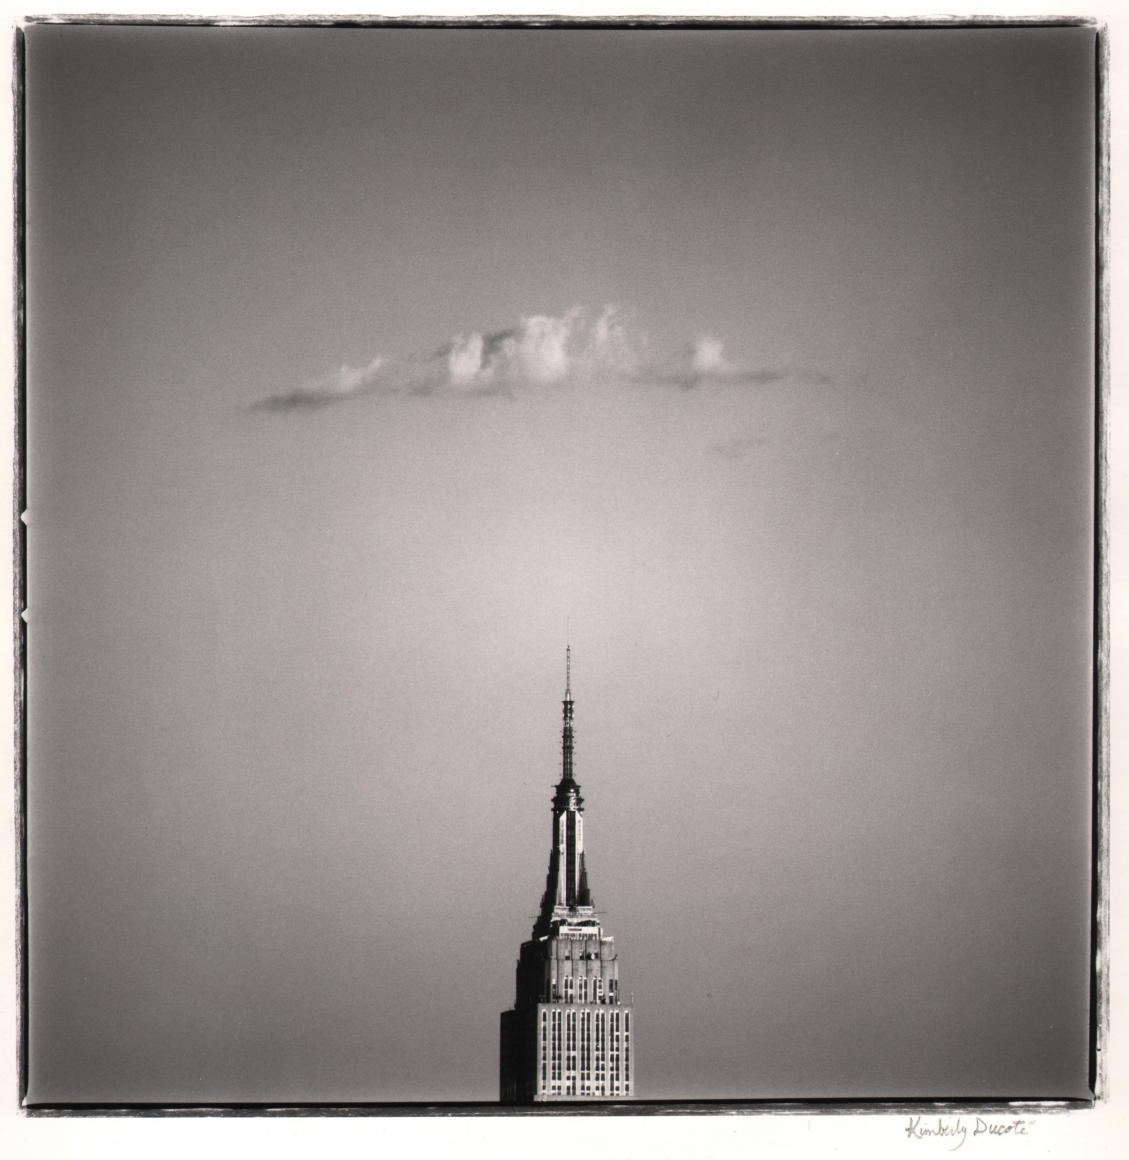 07. Kimberly Ducoté, Empire State Building, 1990. Distant, head-on view of the top of the Empire State Building, which occupies the lower center of the frame. Above it is a single cloud.